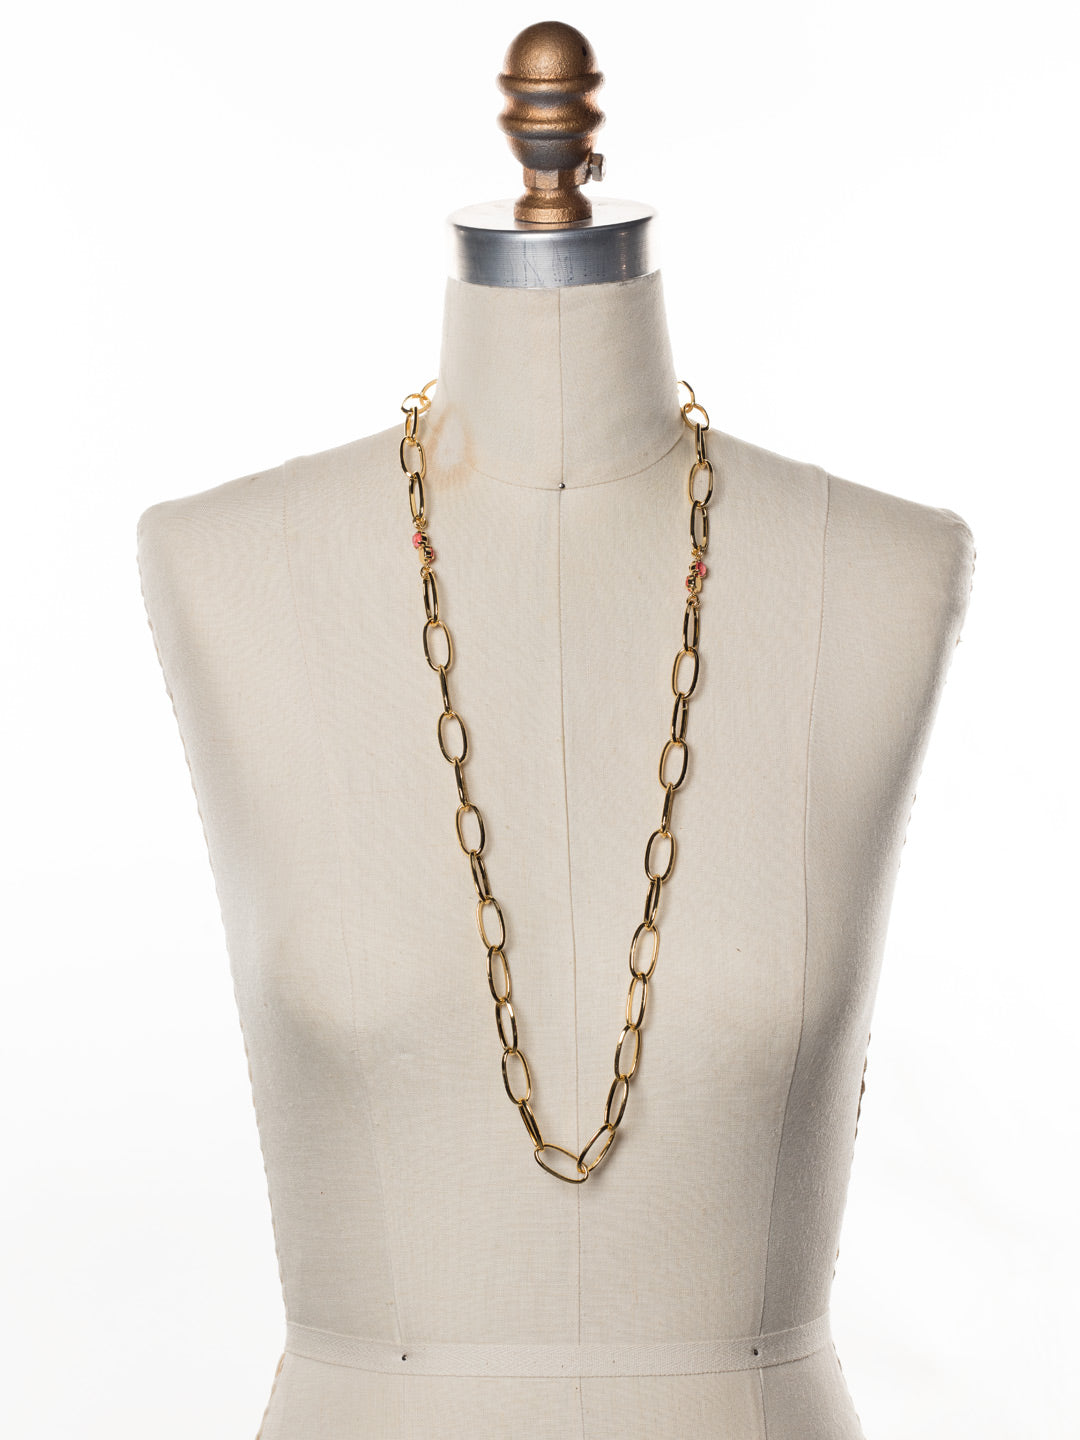 Tamara Long Necklace - NEP32BGBGA